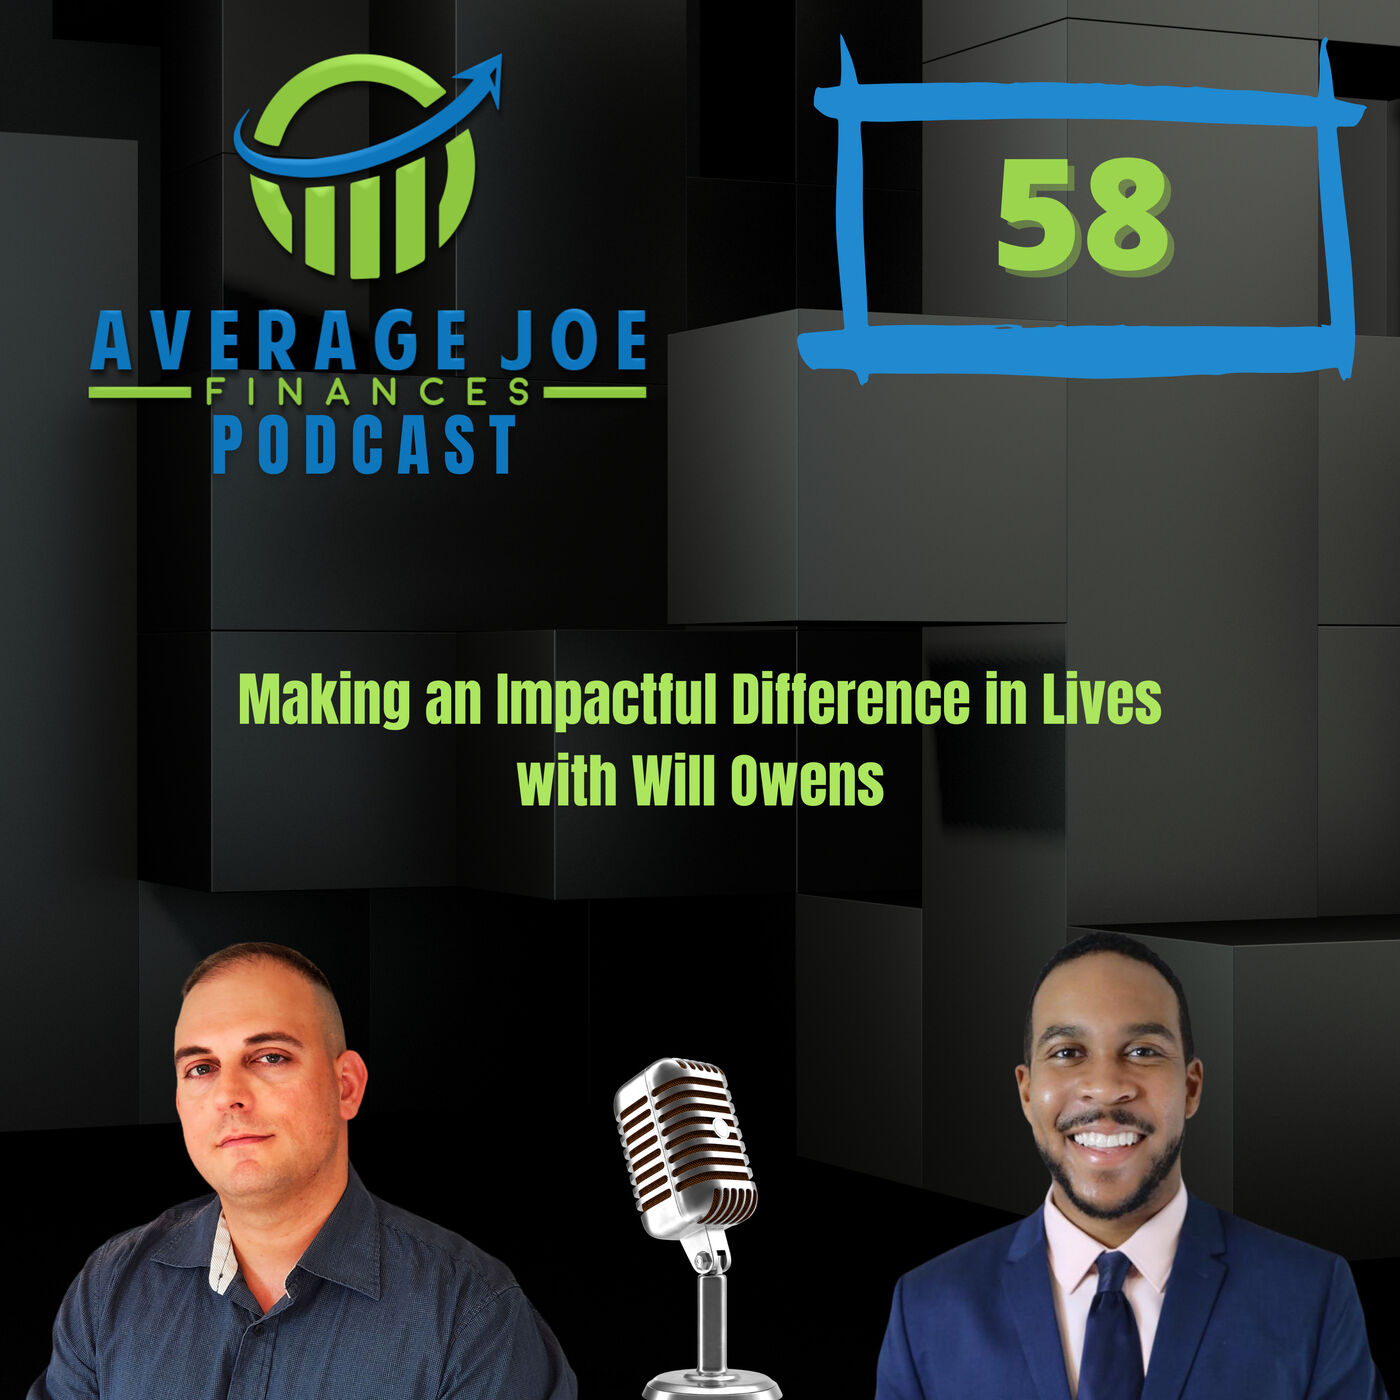 Ep 58 - Making an Impactful Difference in Lives with Will Owens